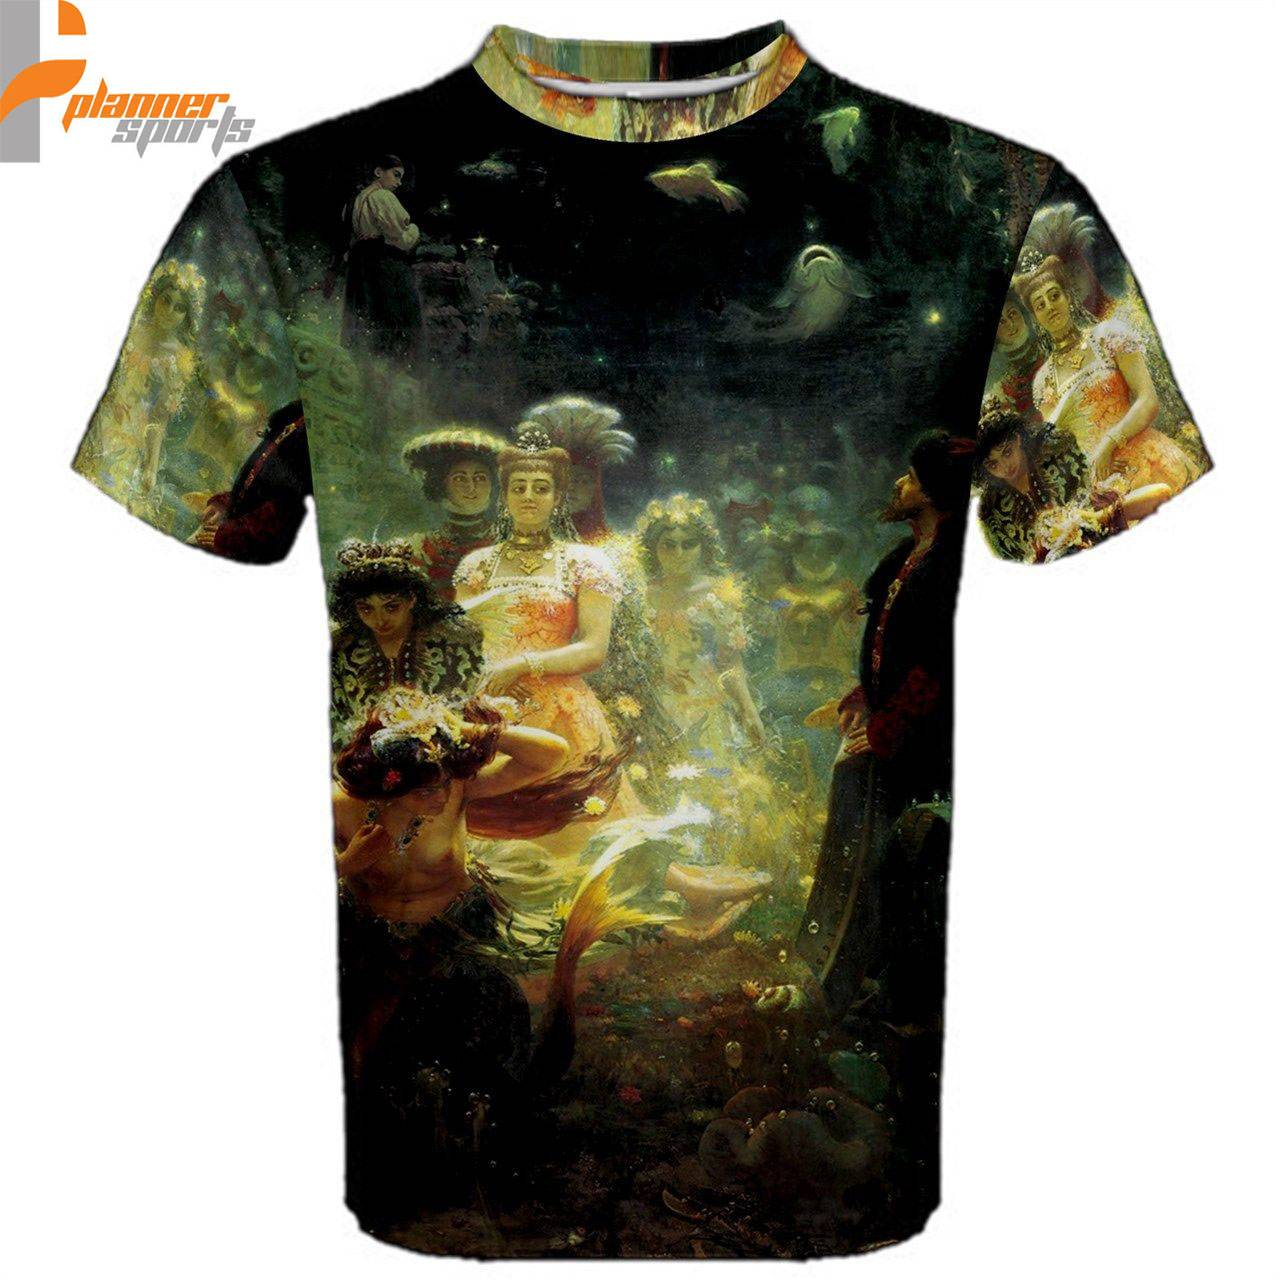 lya Repin Sadko Underwater Kingdom Sublimated Sublimation T-Shirt S,M,L,XL,2XL